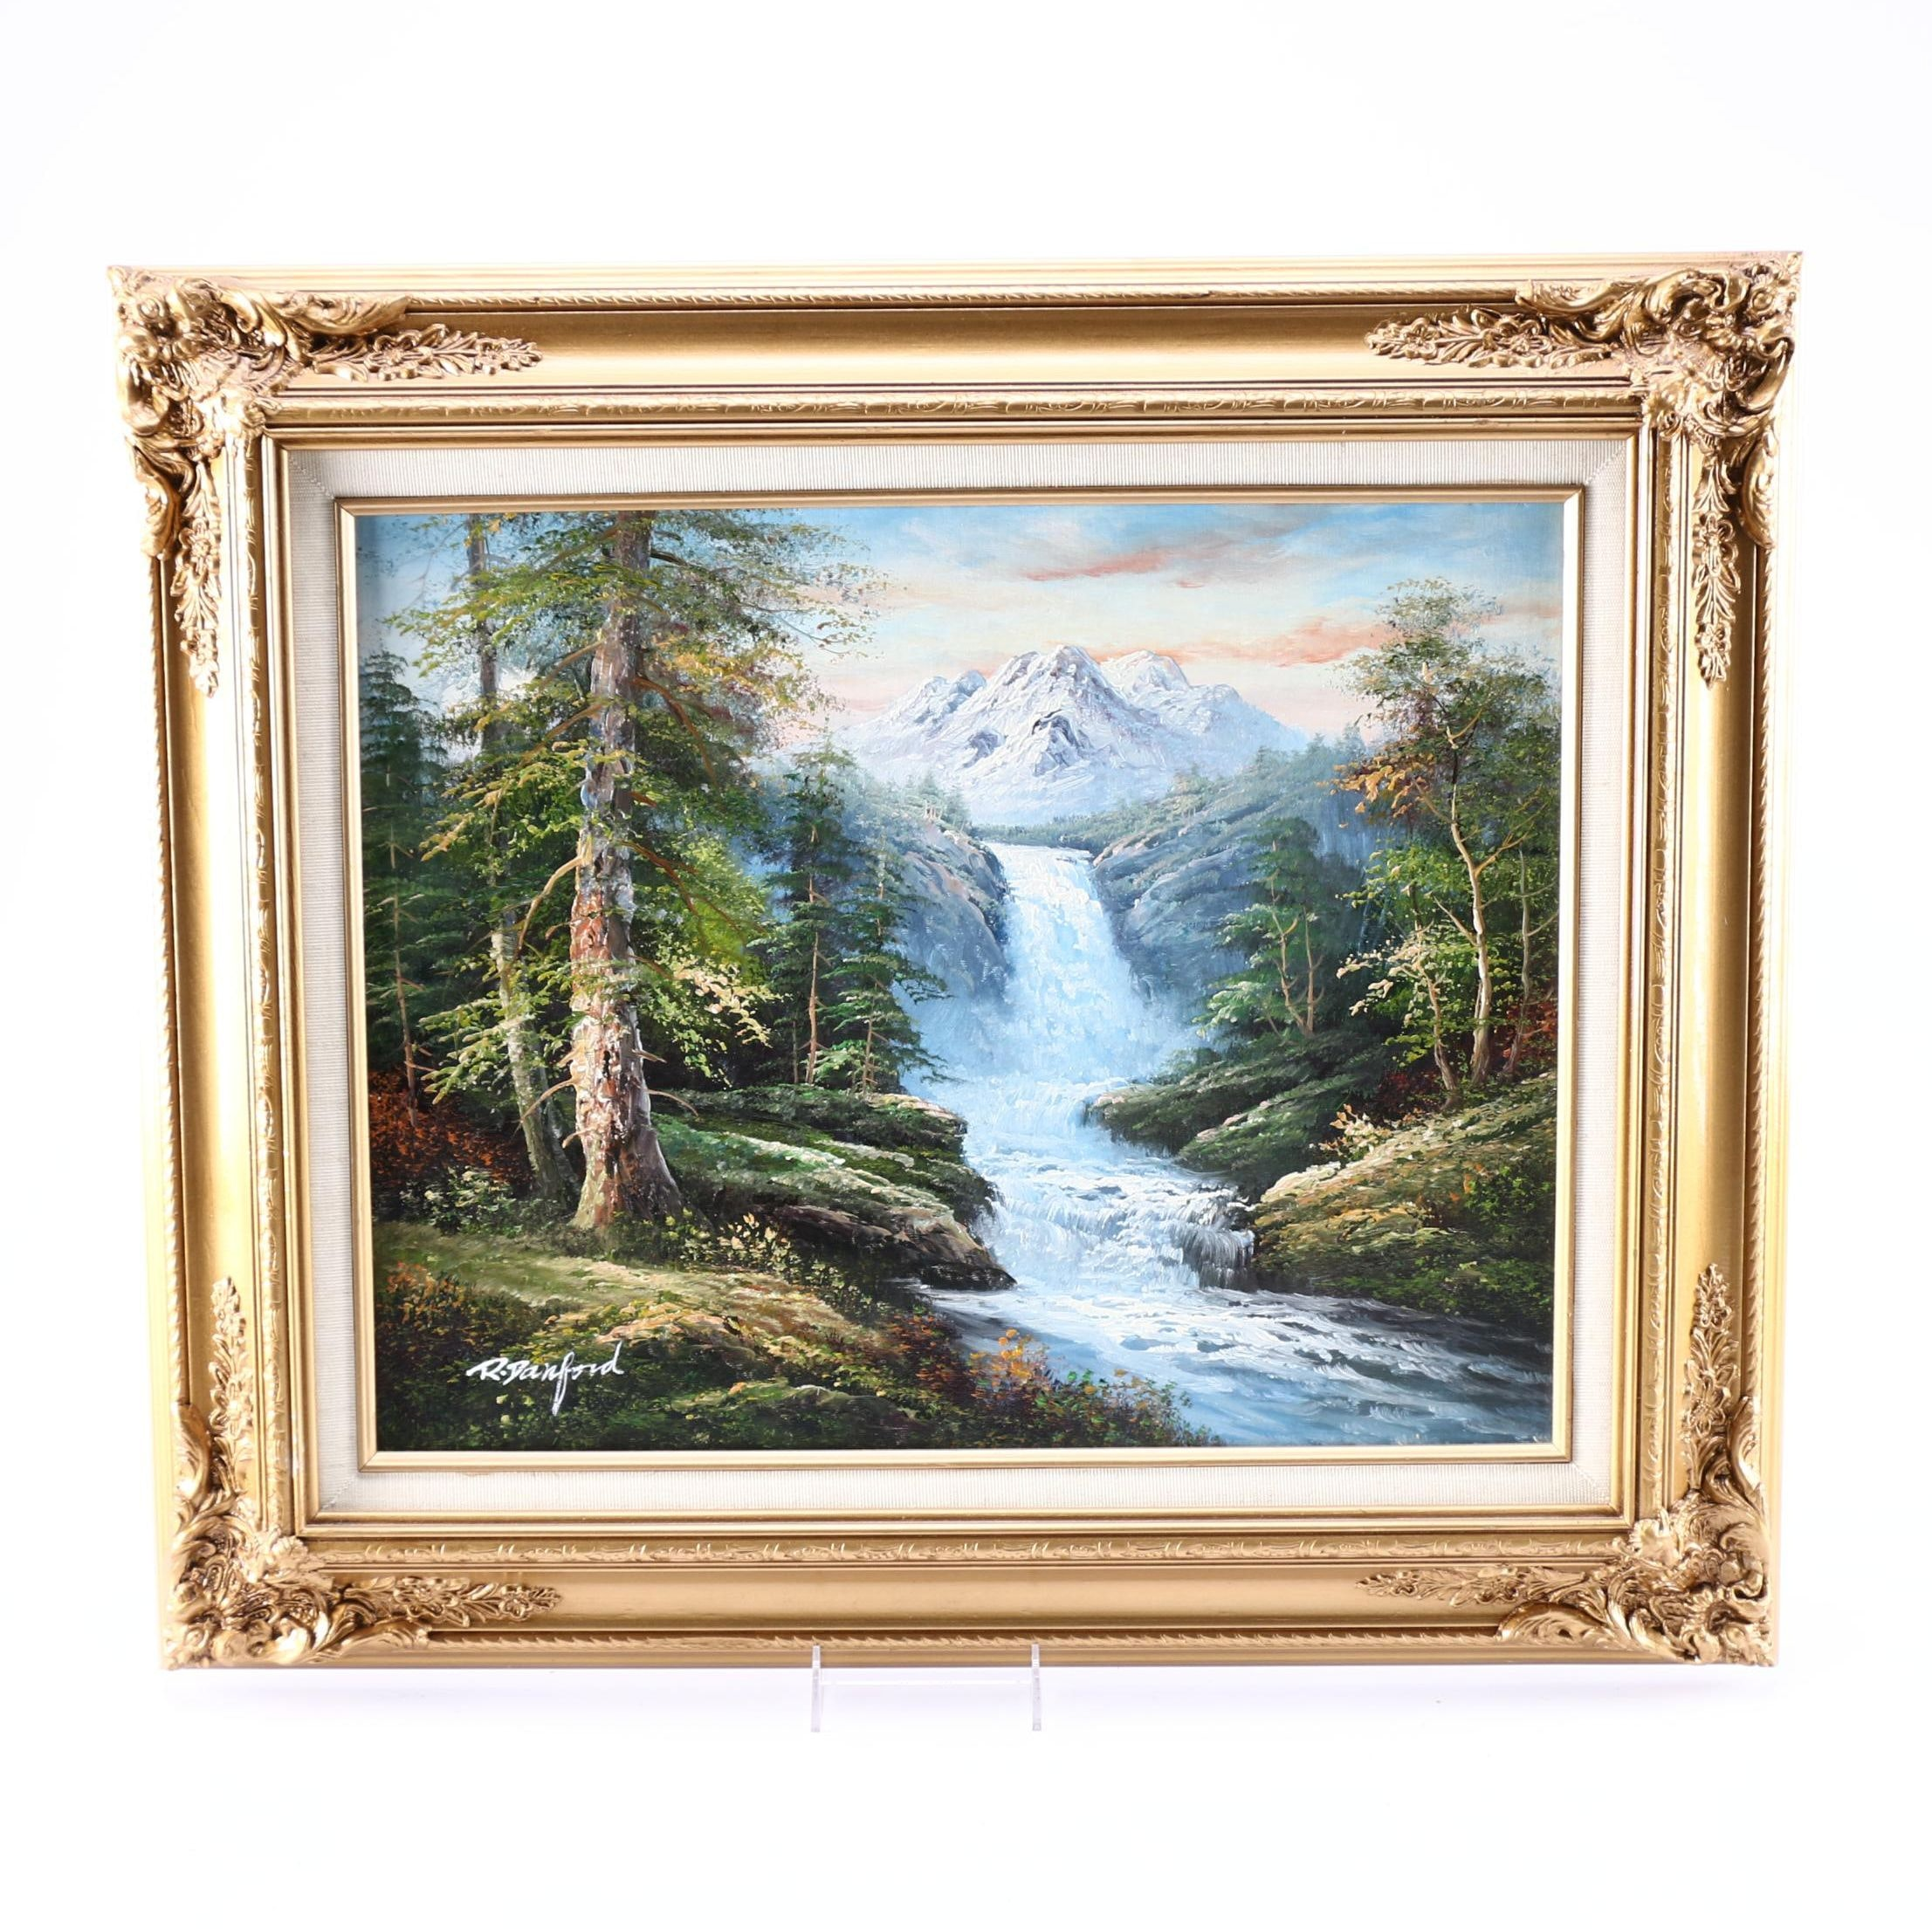 R. Danford Oil Painting on Canvas of a Waterfall in a Mountainous Landscape